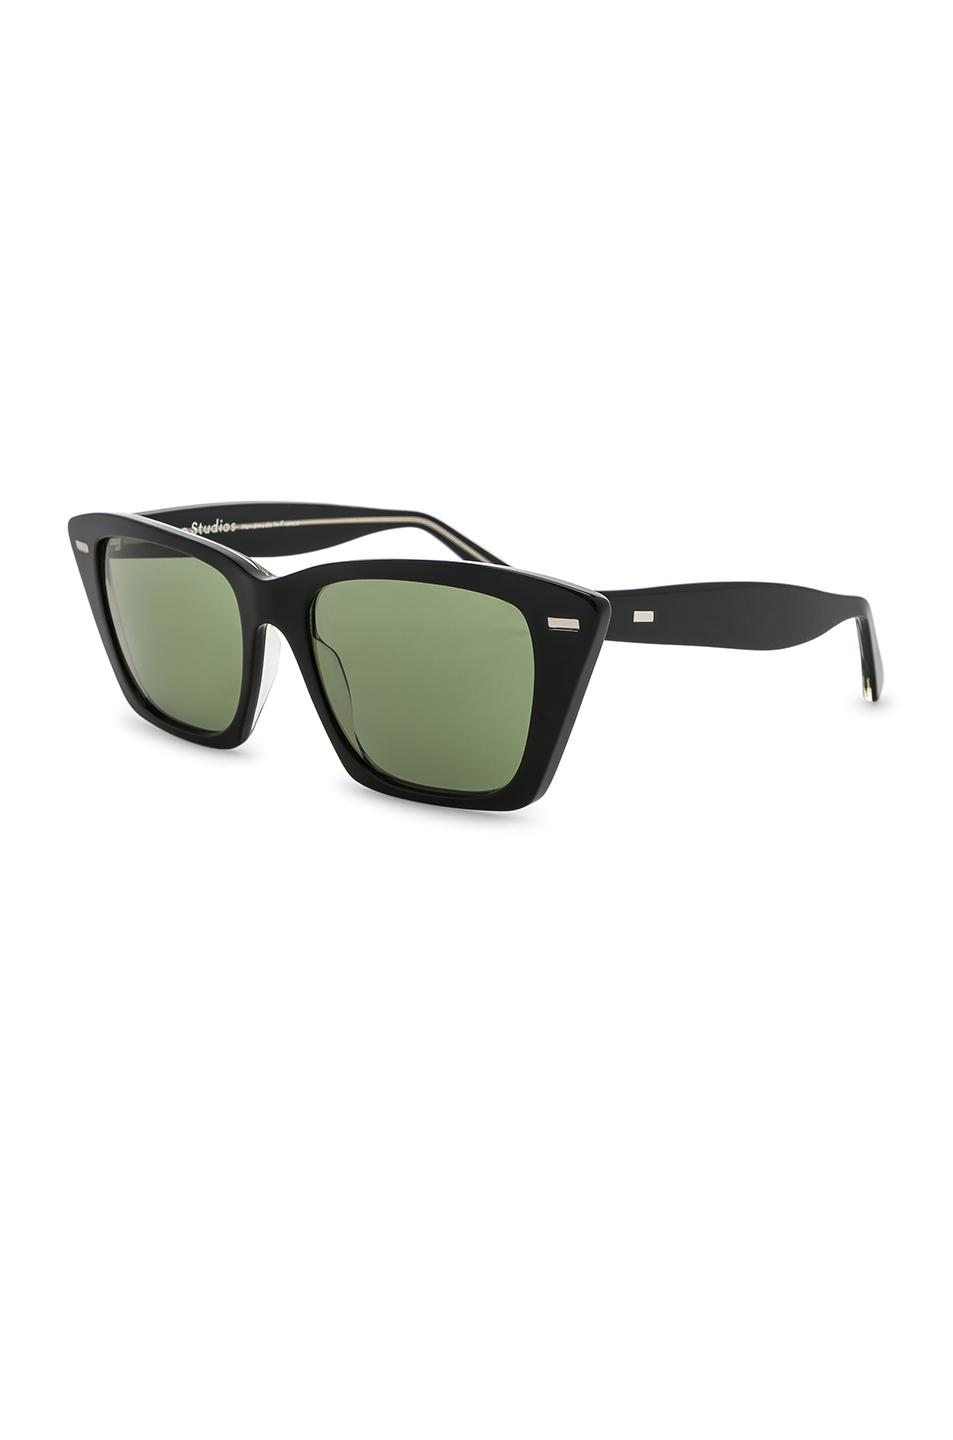 Acne Studios Leather Ingridh Sunglasses in Black, Yellow & Green (Green)